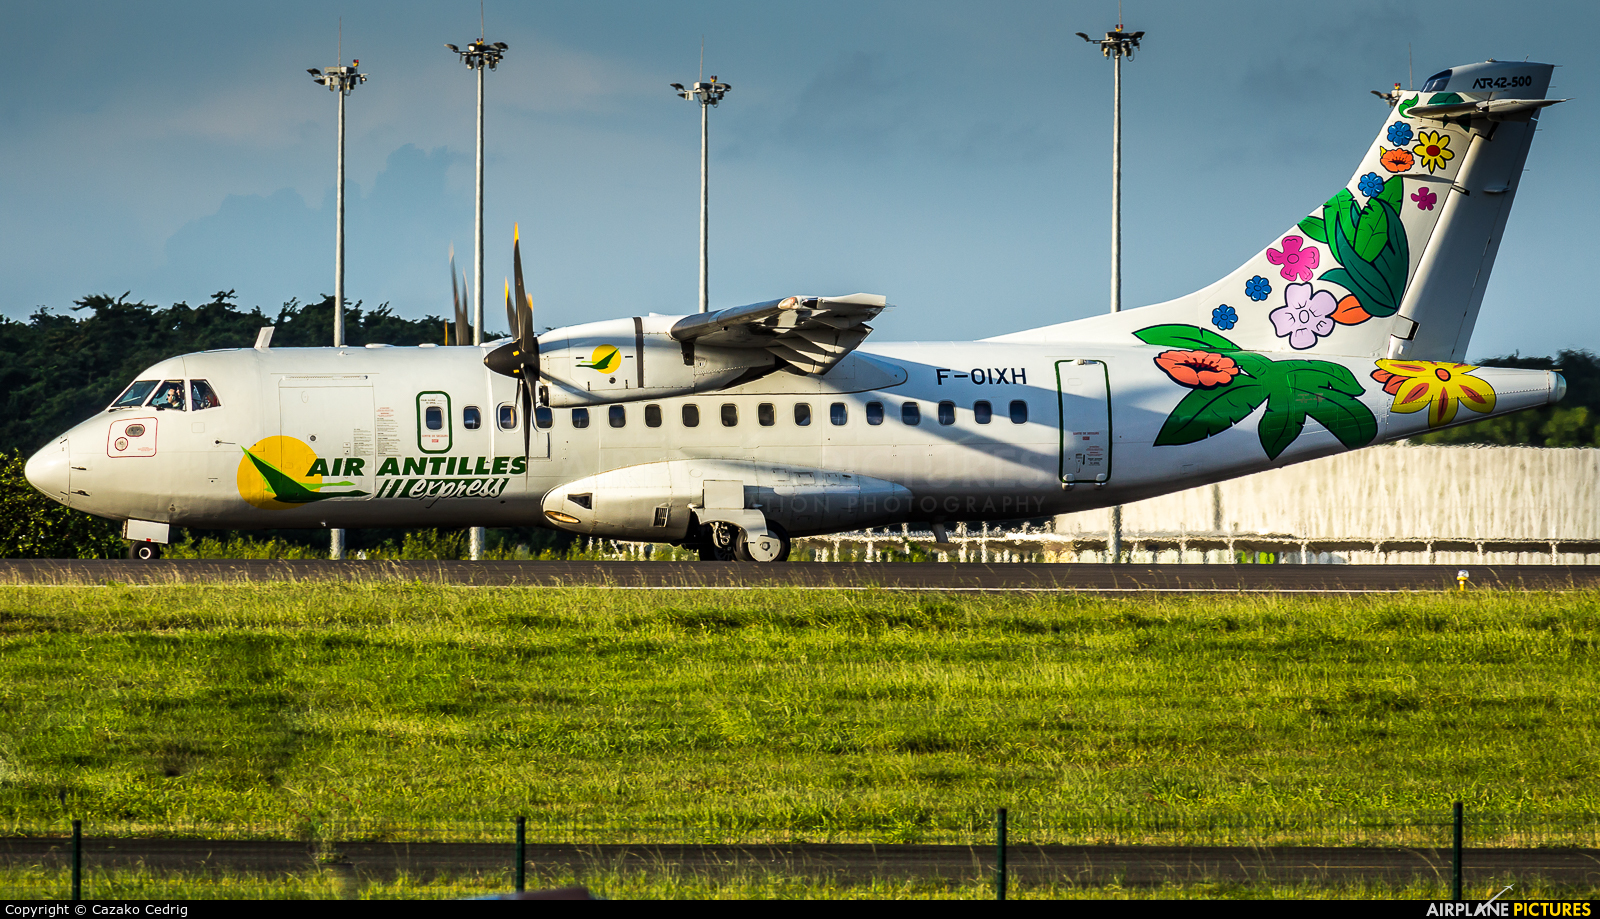 Air Antilles Express F-OIXH aircraft at Guadeloupe - Pointe-à-Pitre